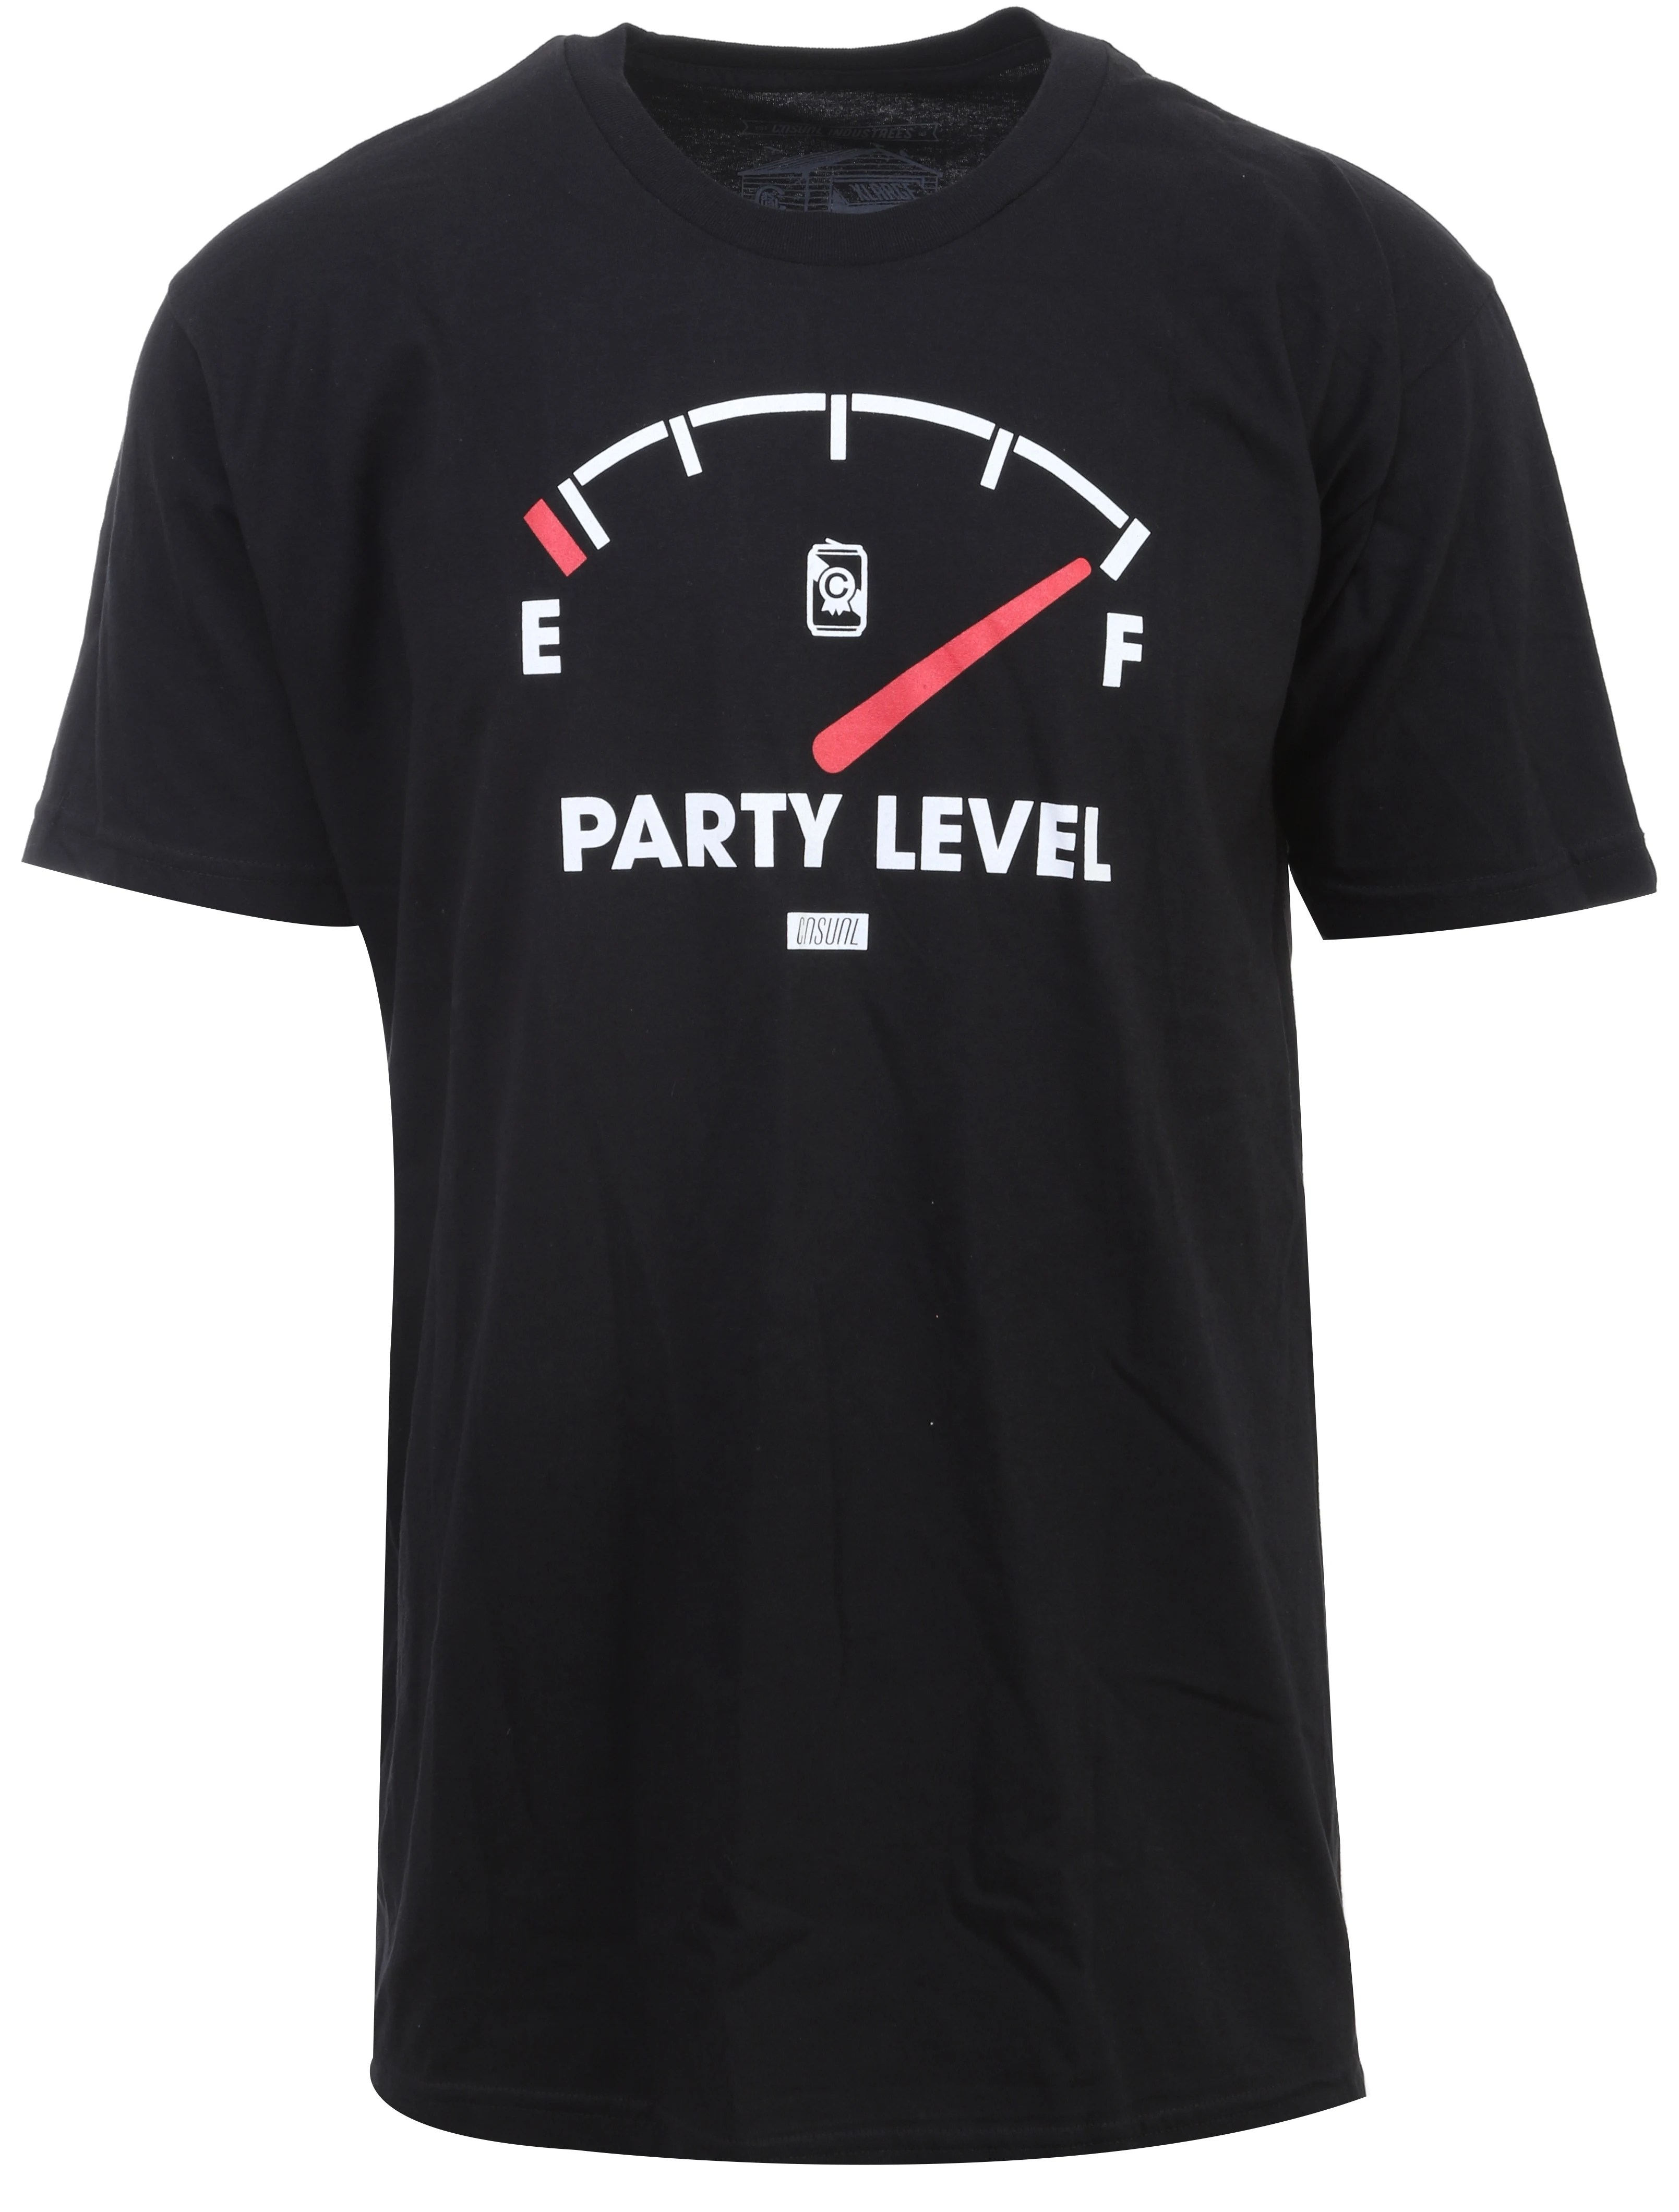 T Shirt Party